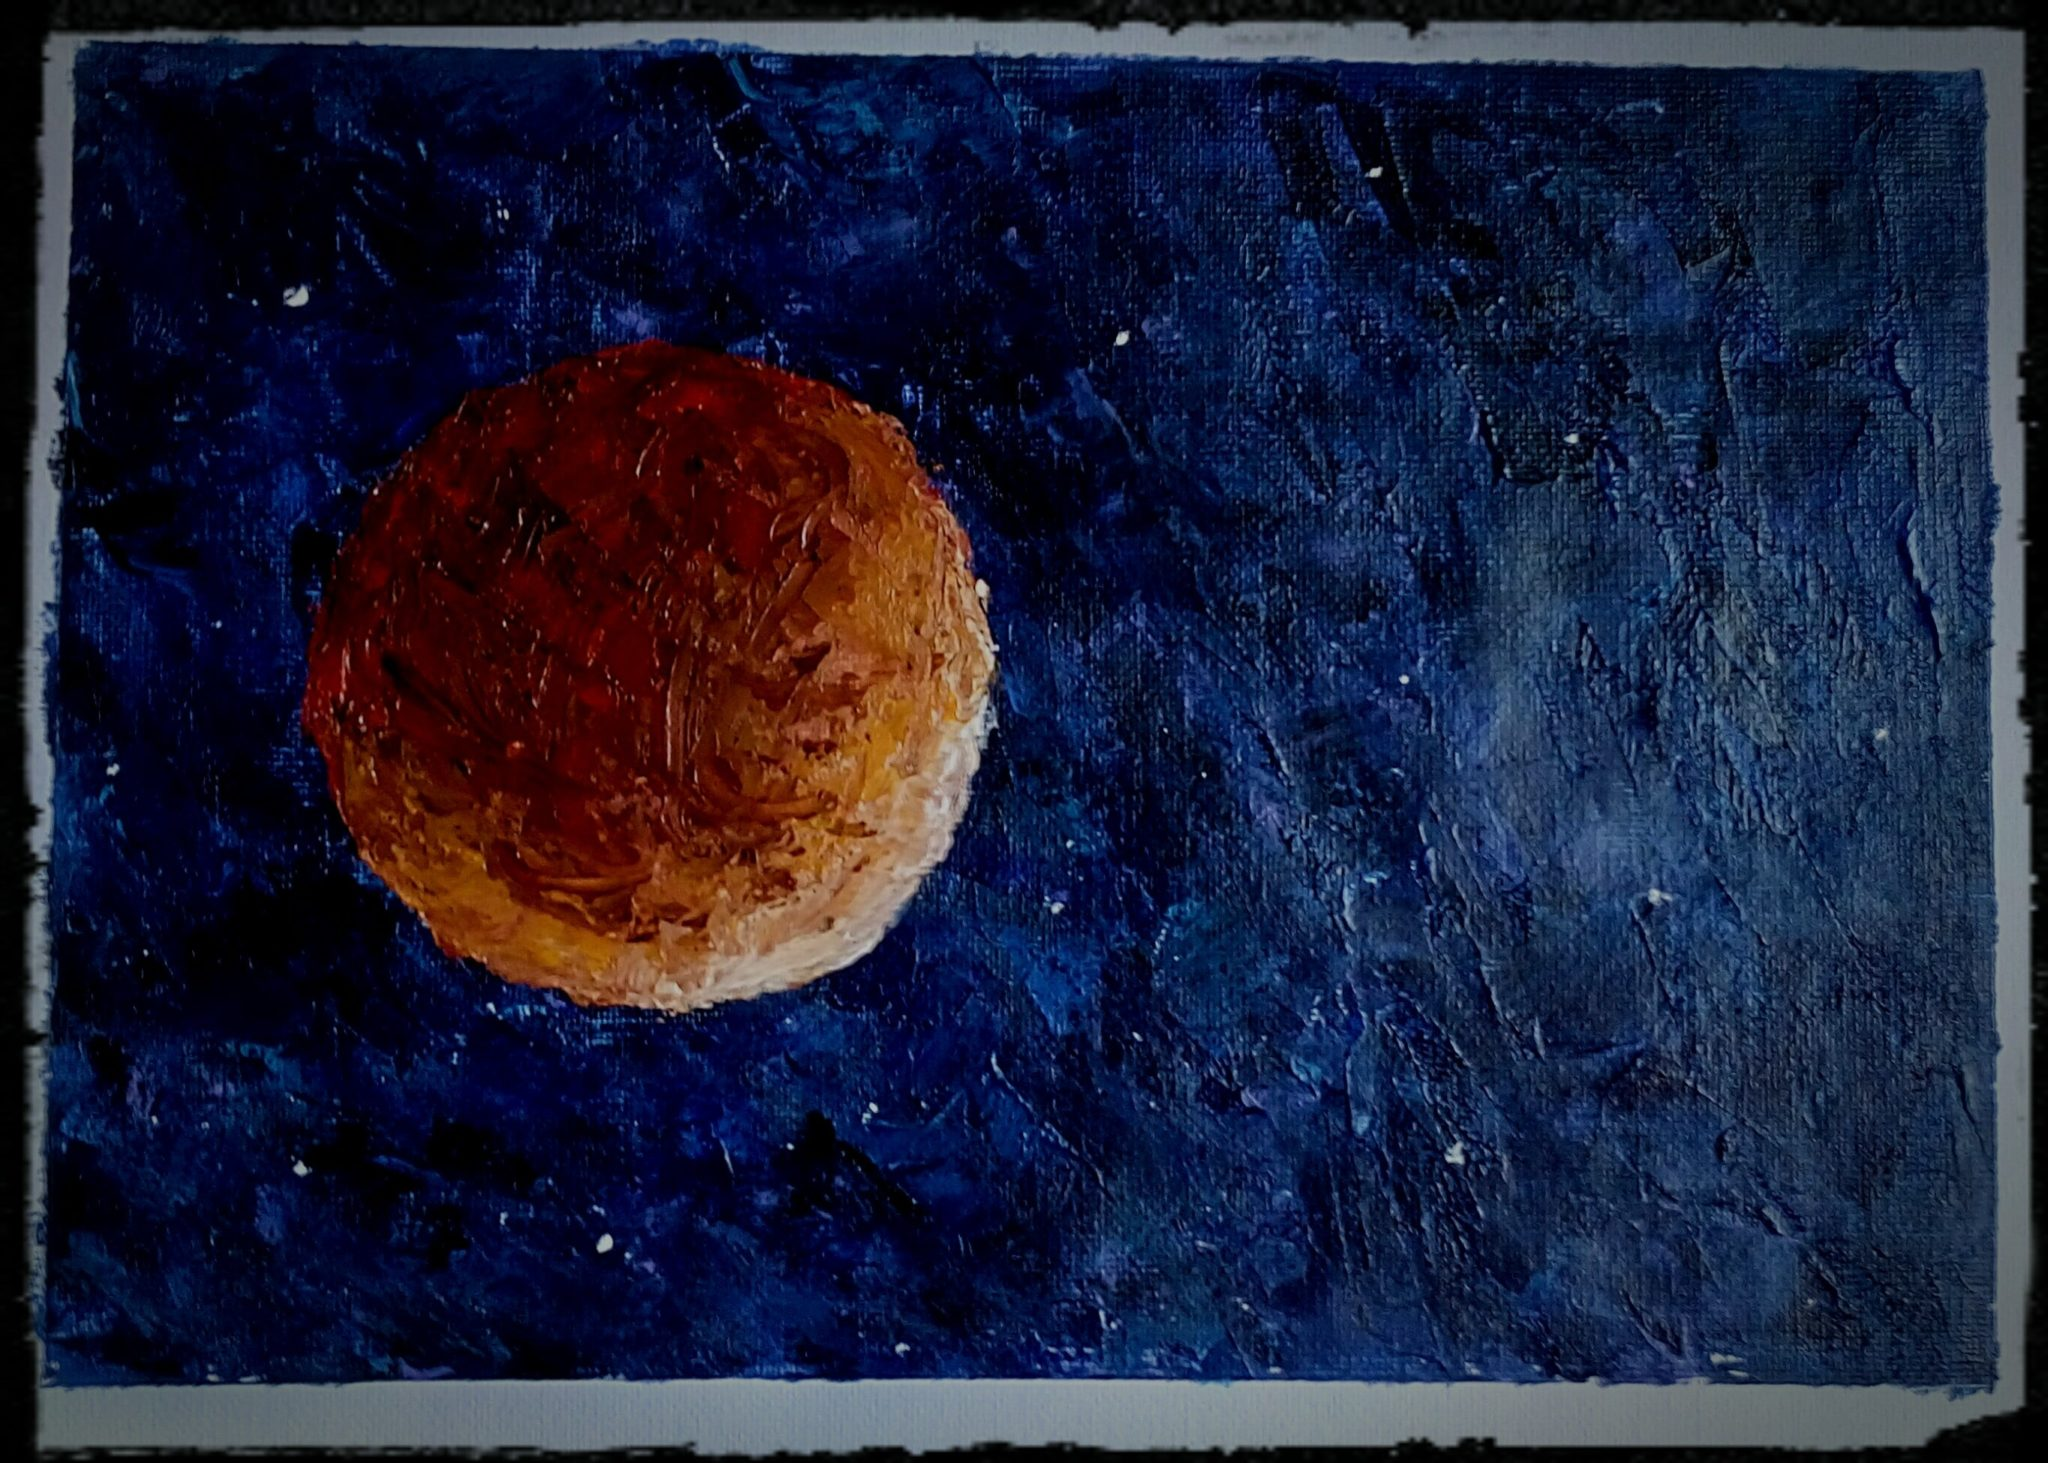 Blood moon inspired by recent Lunar Eclipse